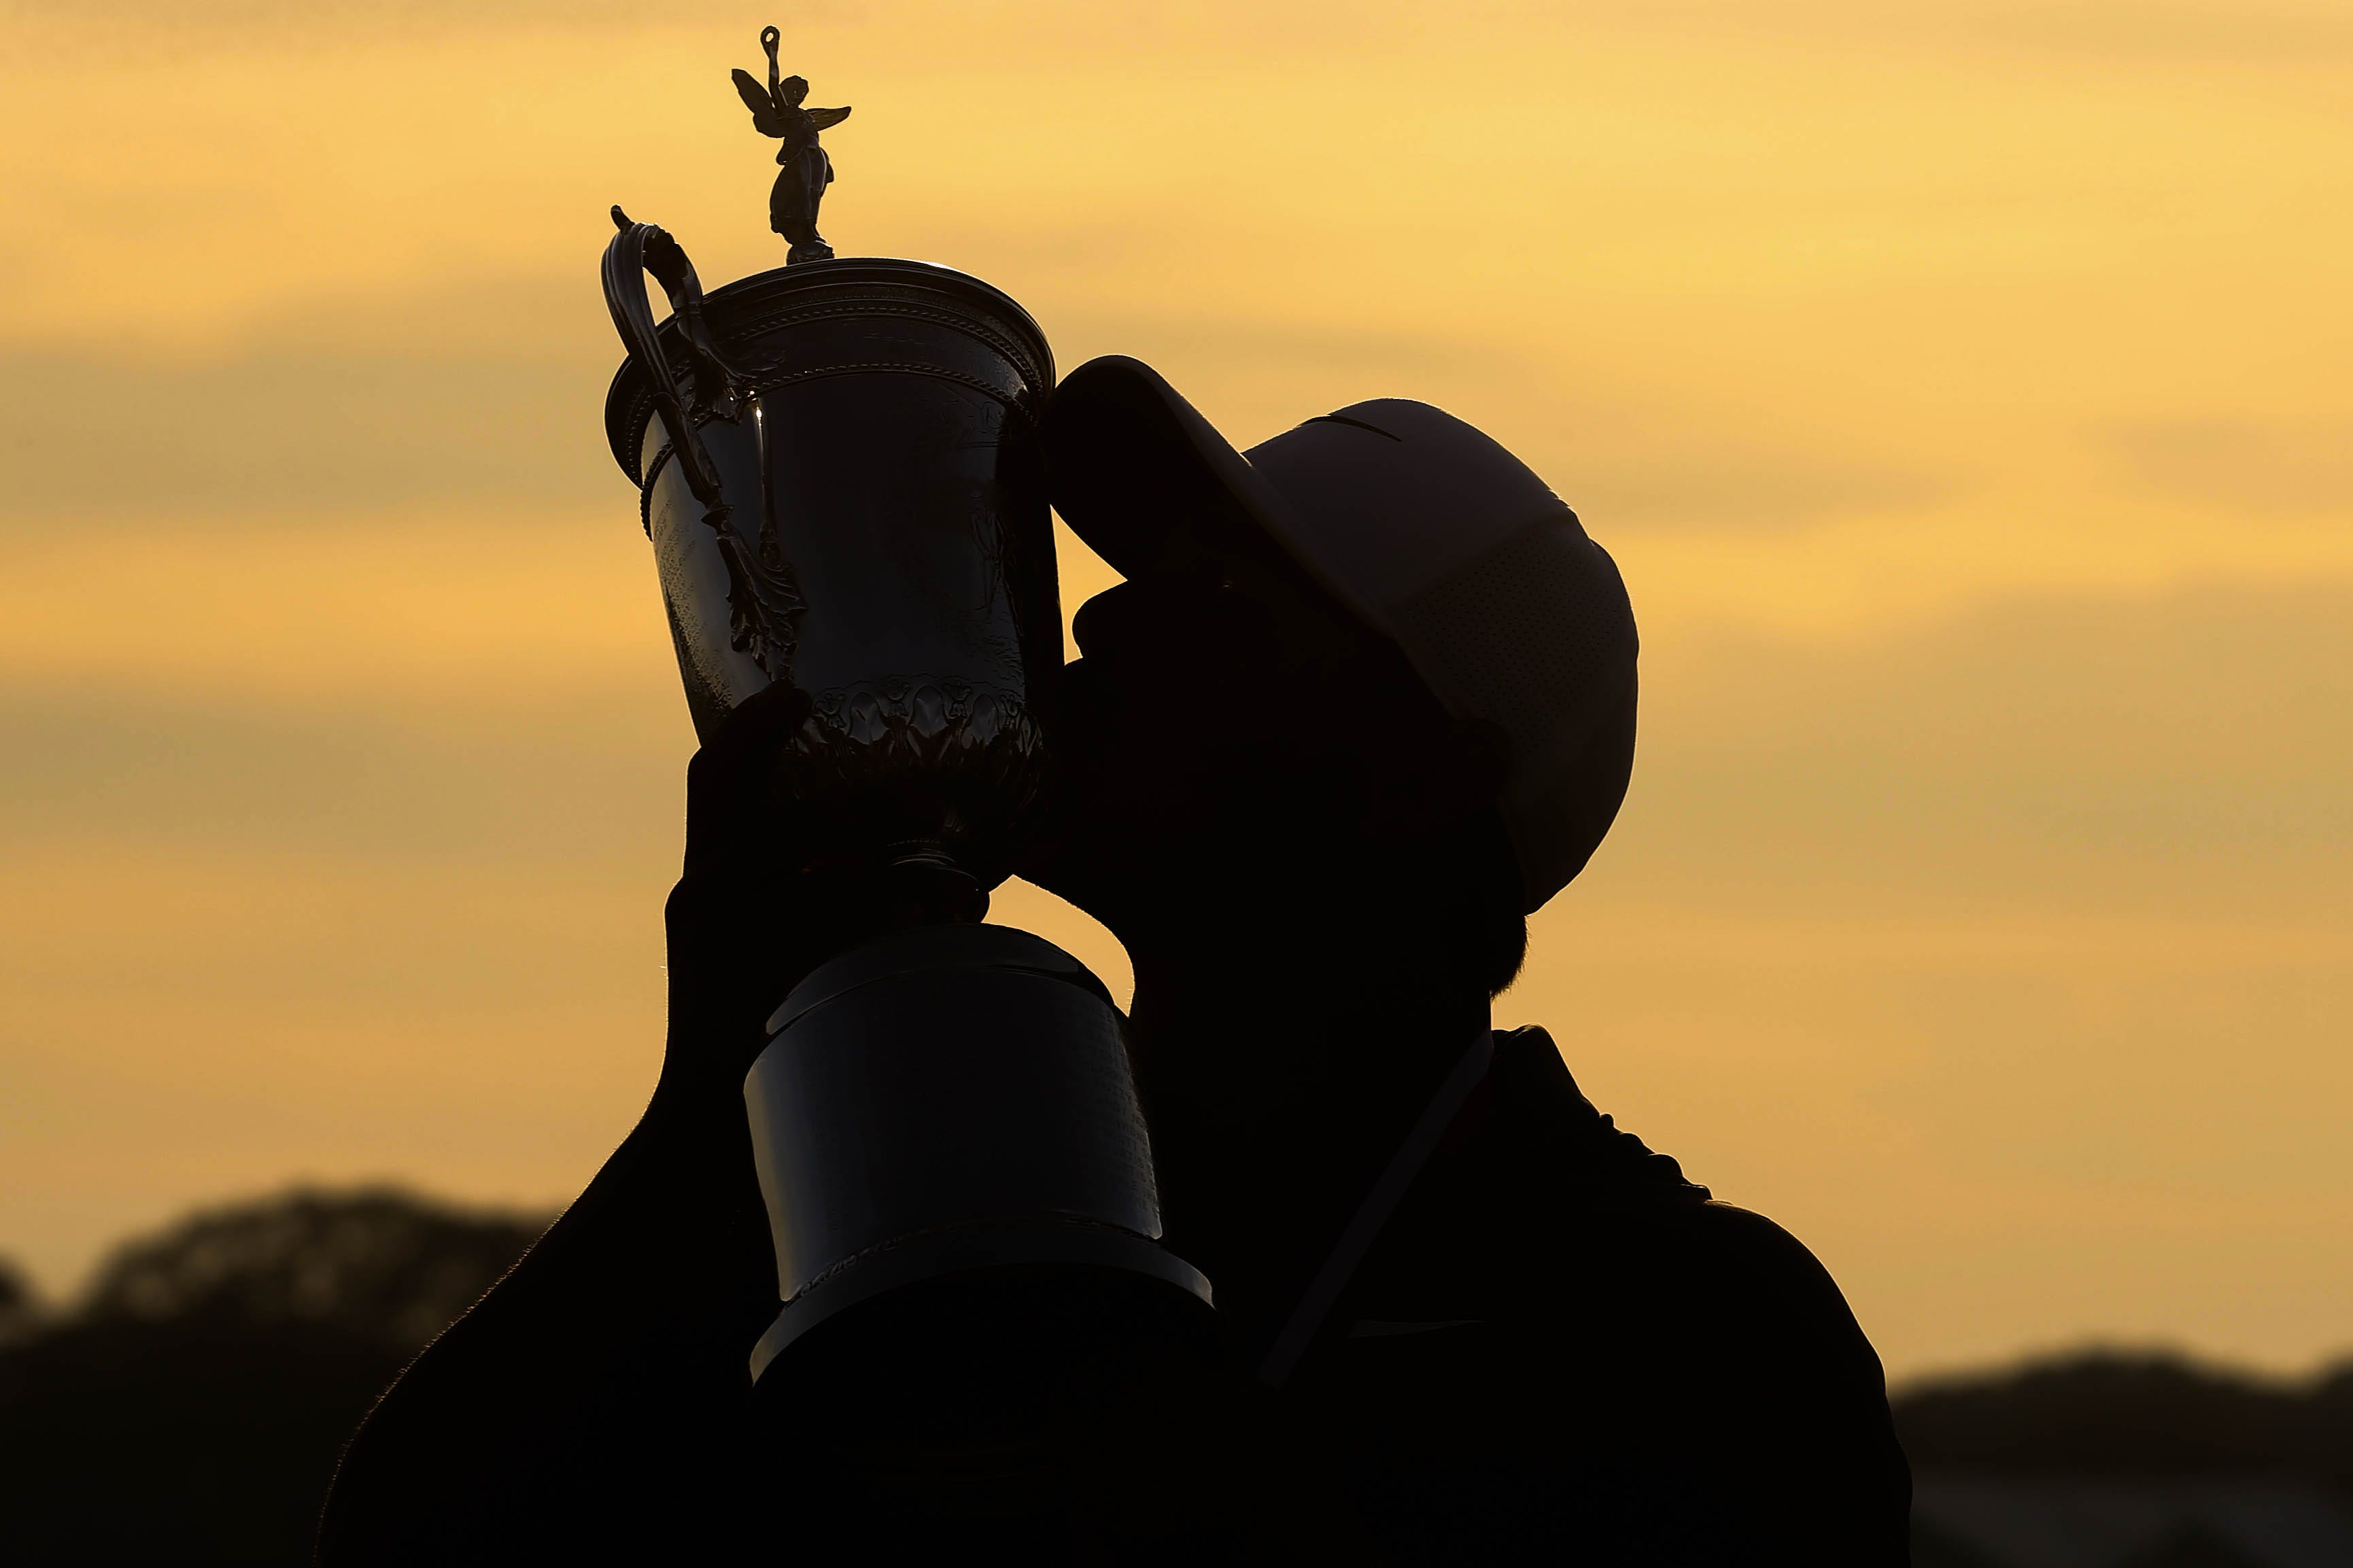 Brooks Koepka kisses the trophy after winning the U.S. Open golf tournament in Southampton, N.Y.